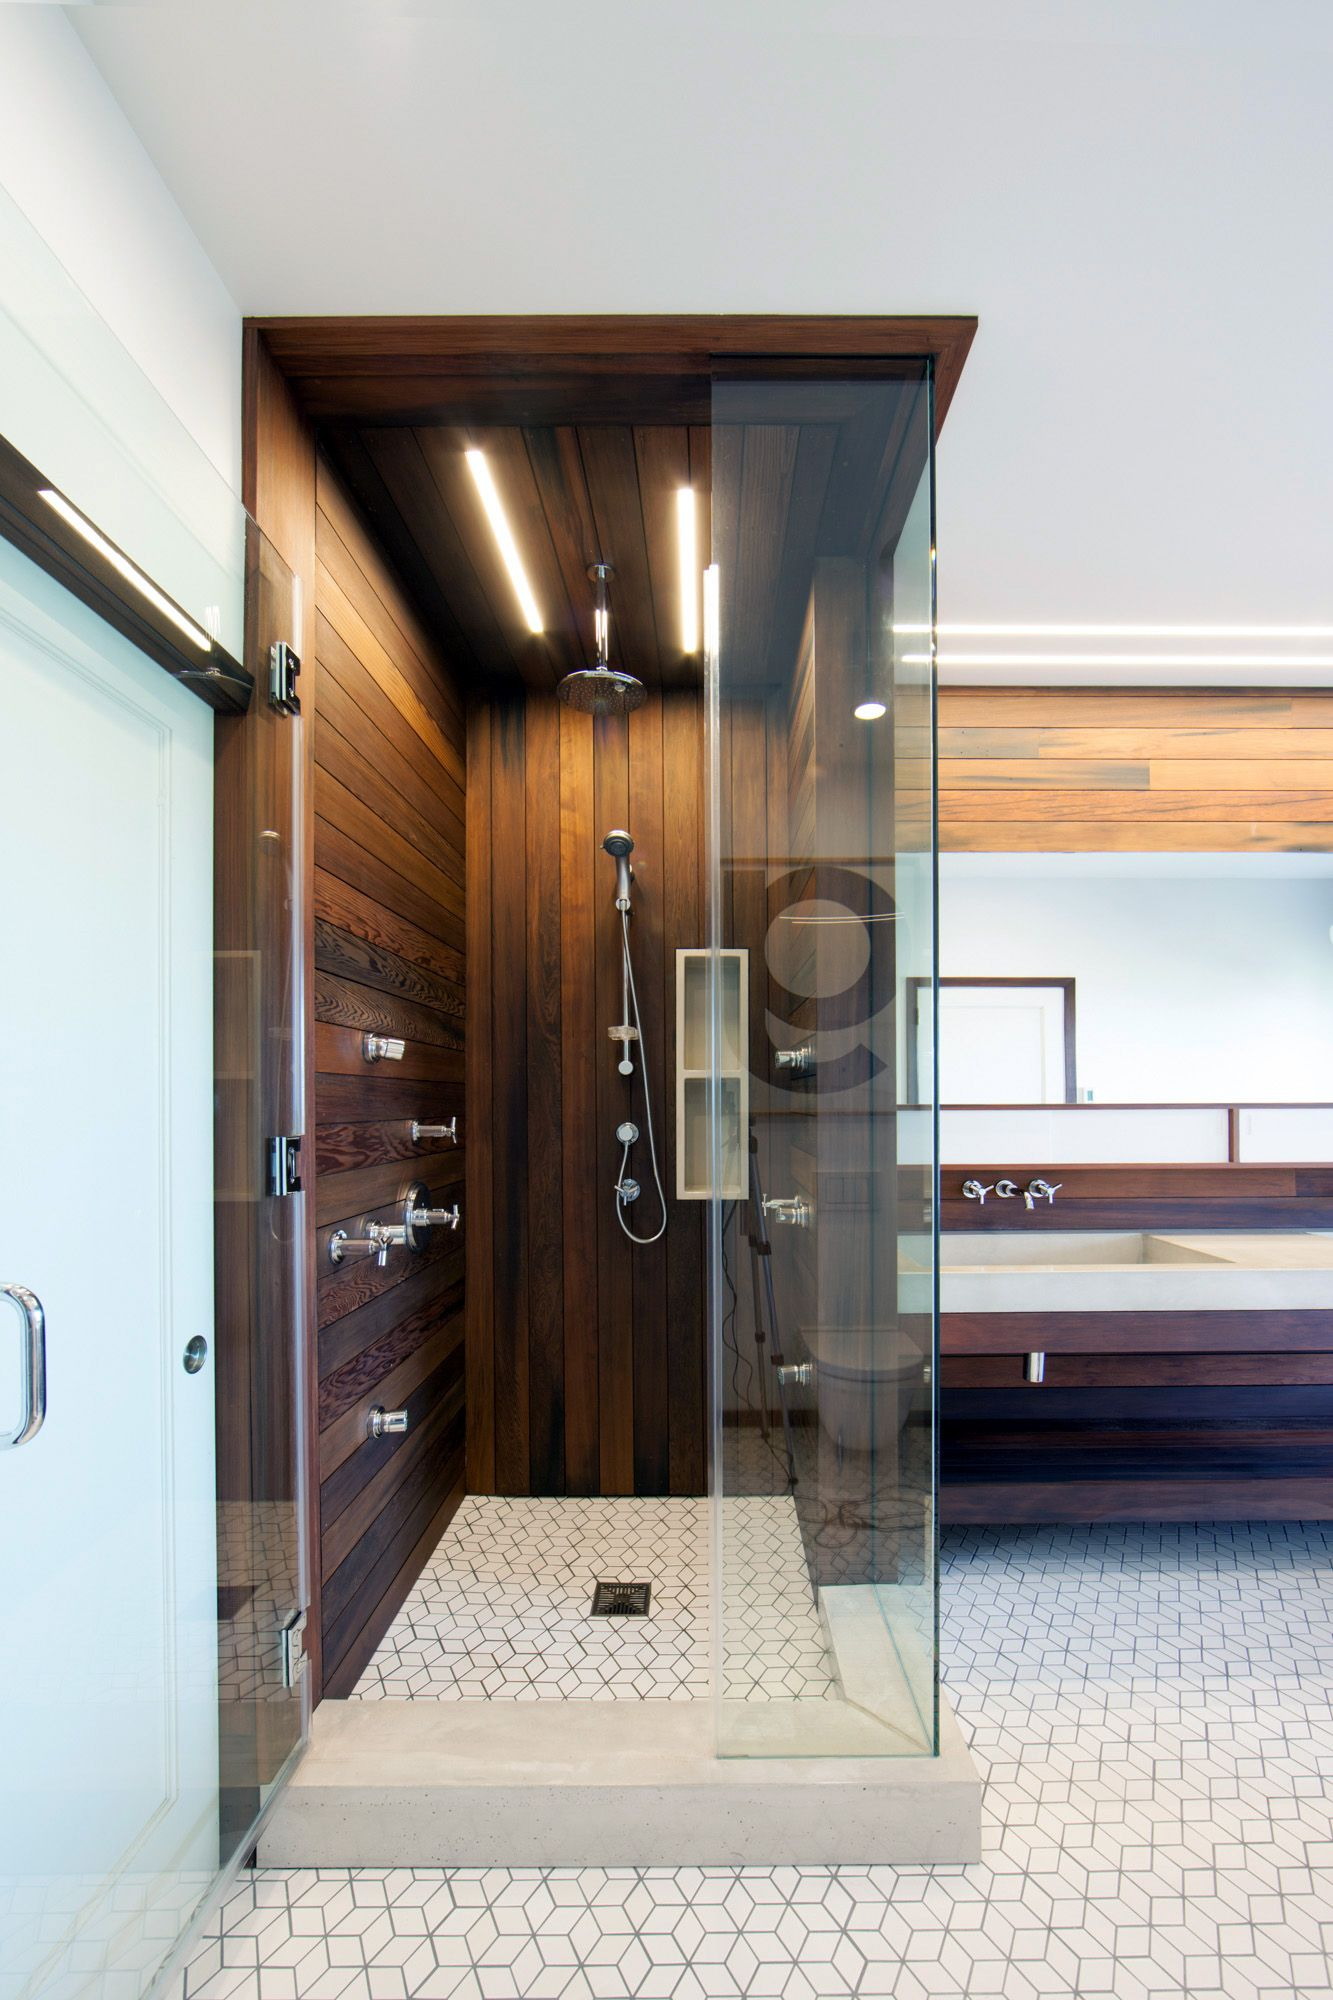 Bathroom Design San Francisco Custom San Francisco Bathroom Design & Build Knife 12 & Saw  Arcson Inspiration Design